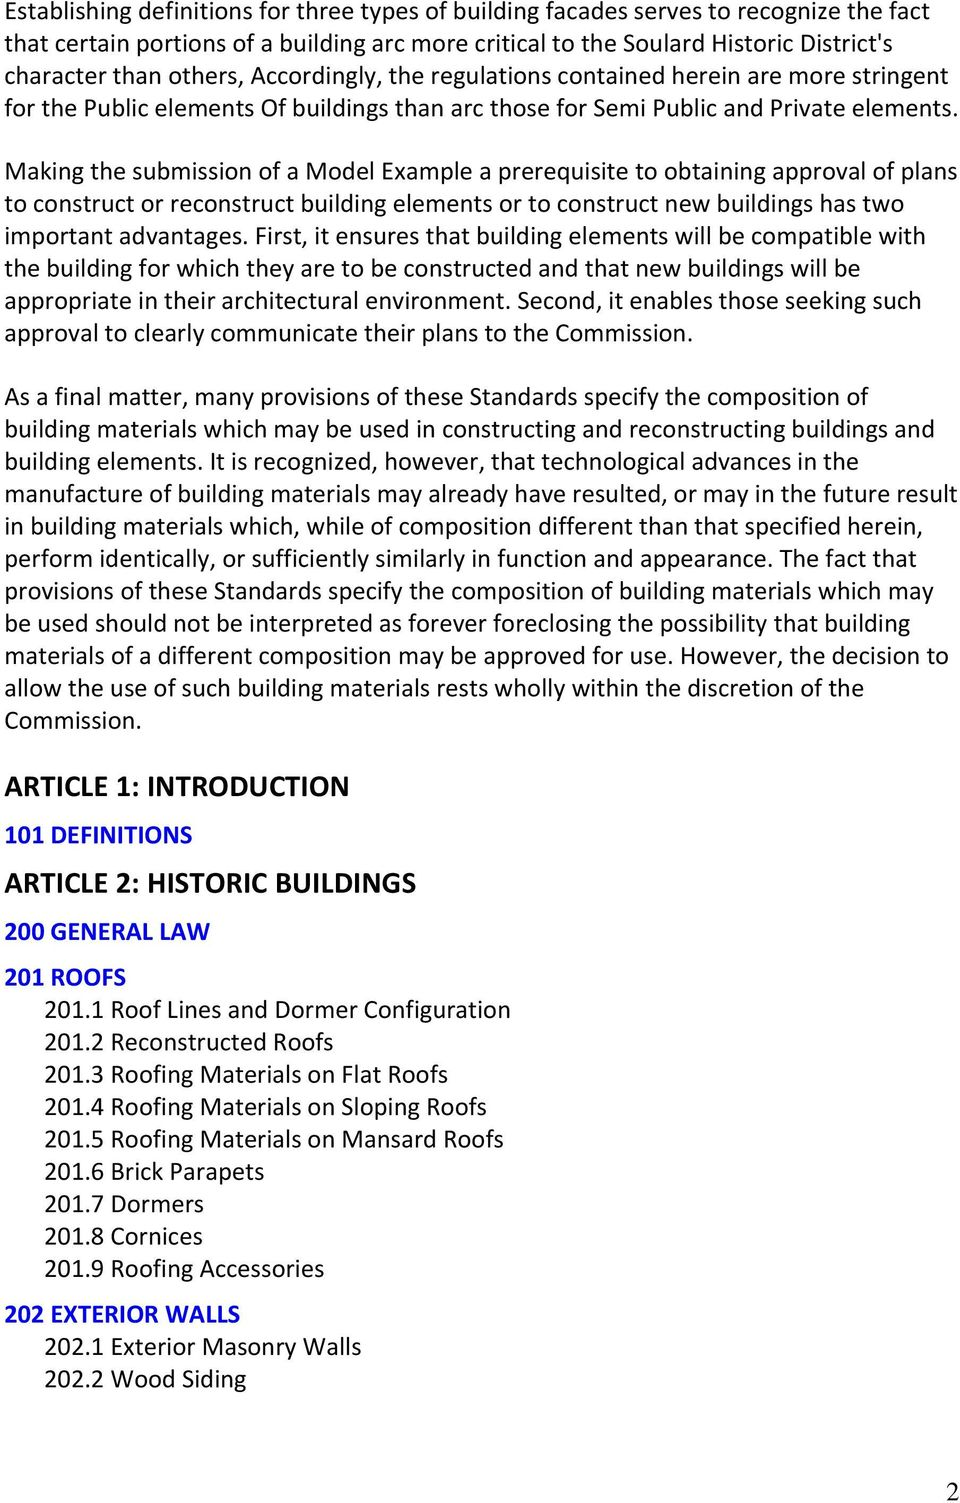 Making the submission of a Model Example a prerequisite to obtaining approval of plans to construct or reconstruct building elements or to construct new buildings has two important advantages.